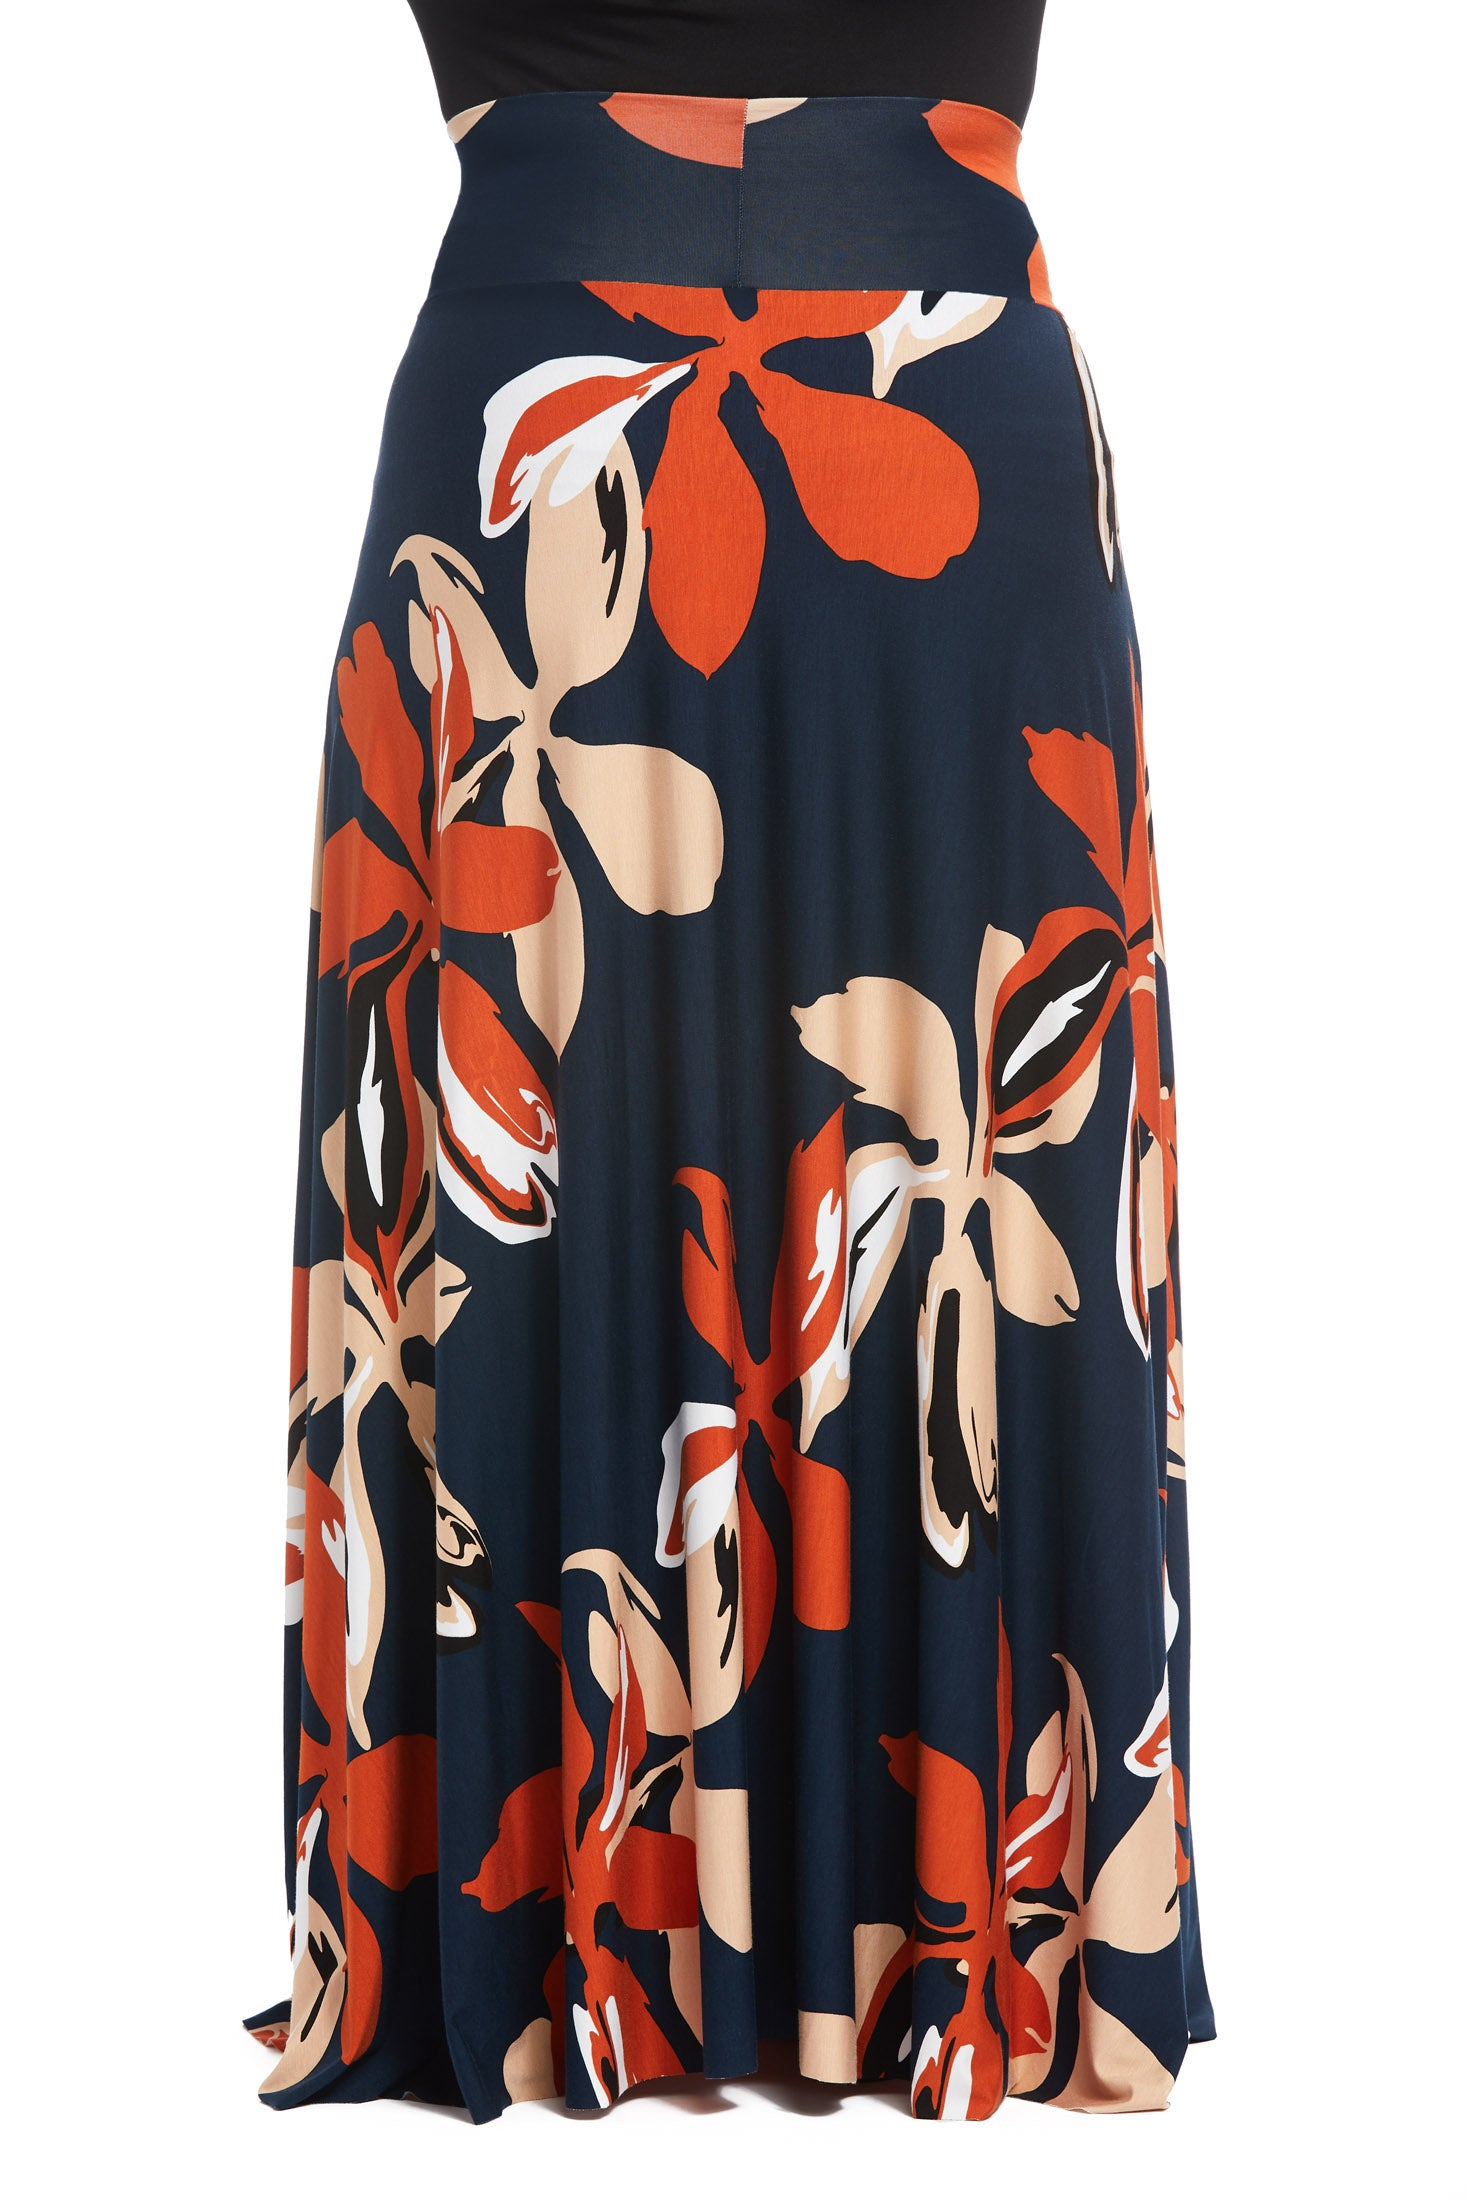 Long Full Skirt - Pop Floral, Plus Size